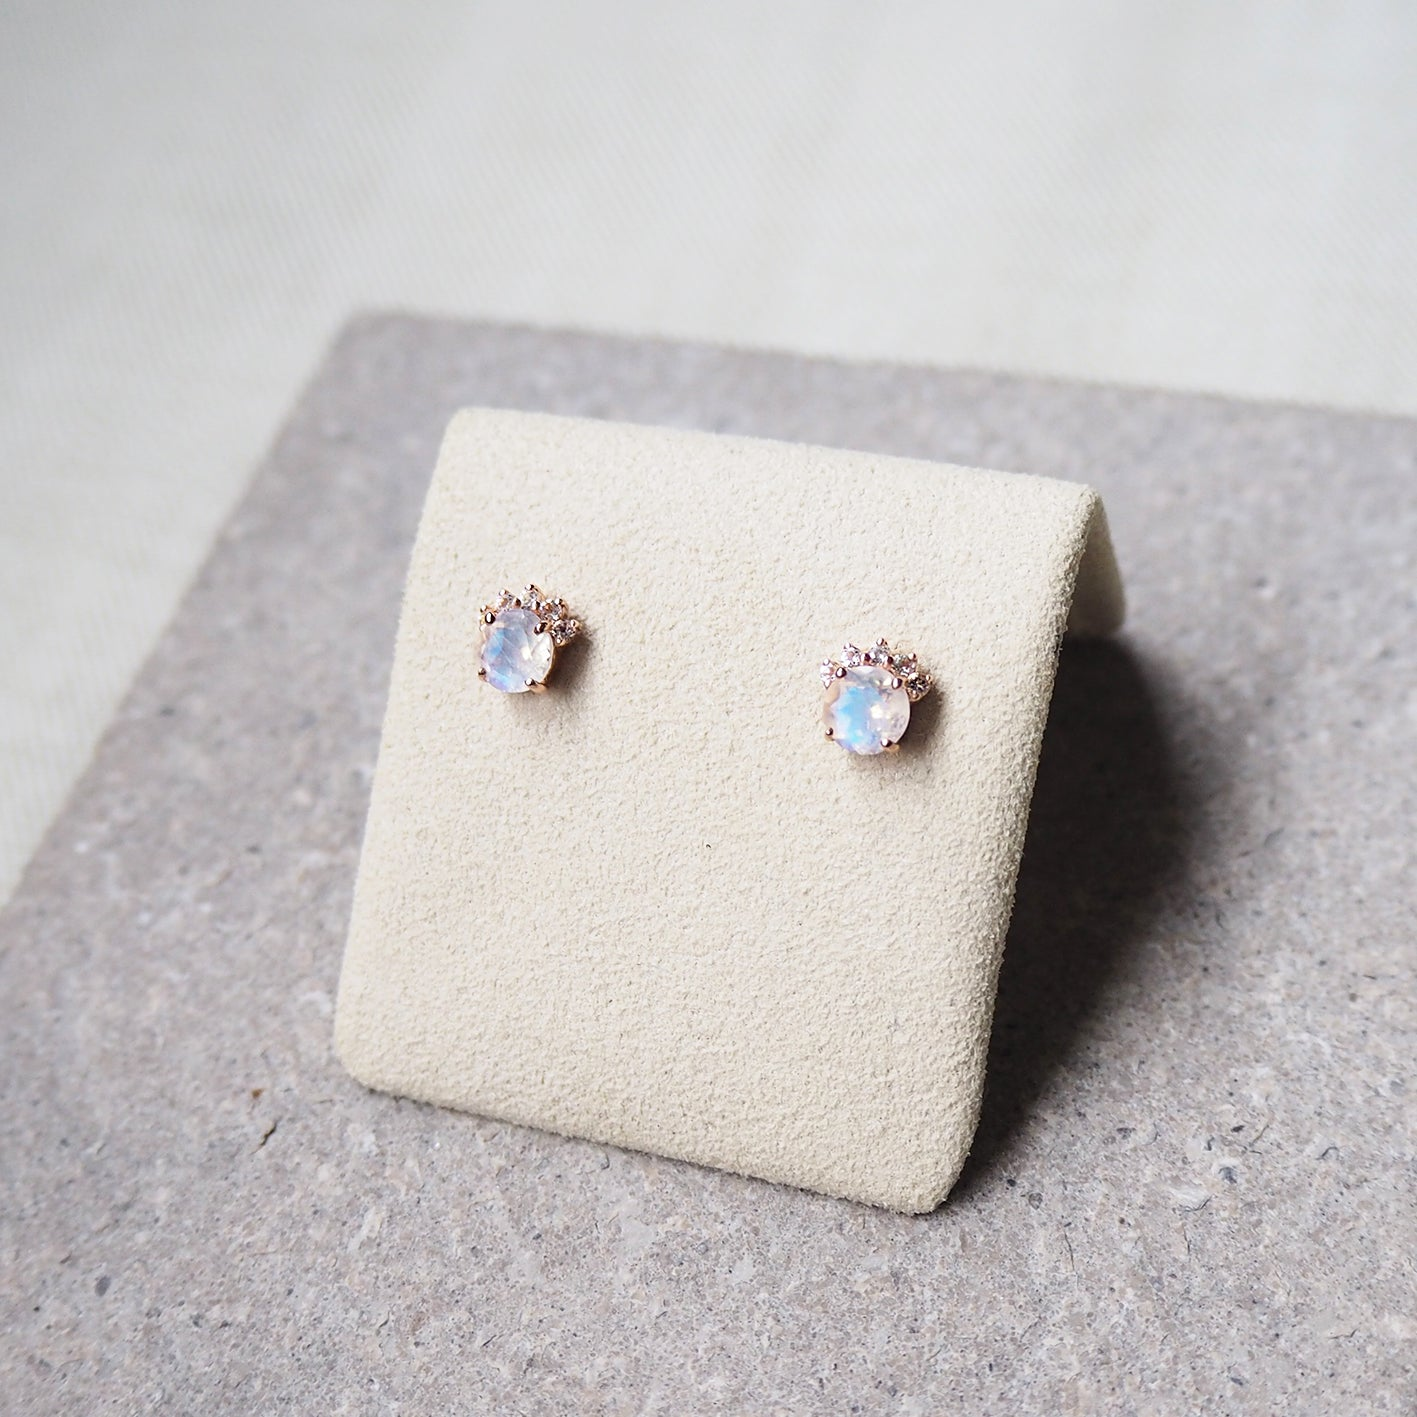 Starry Earrings - Moonstone